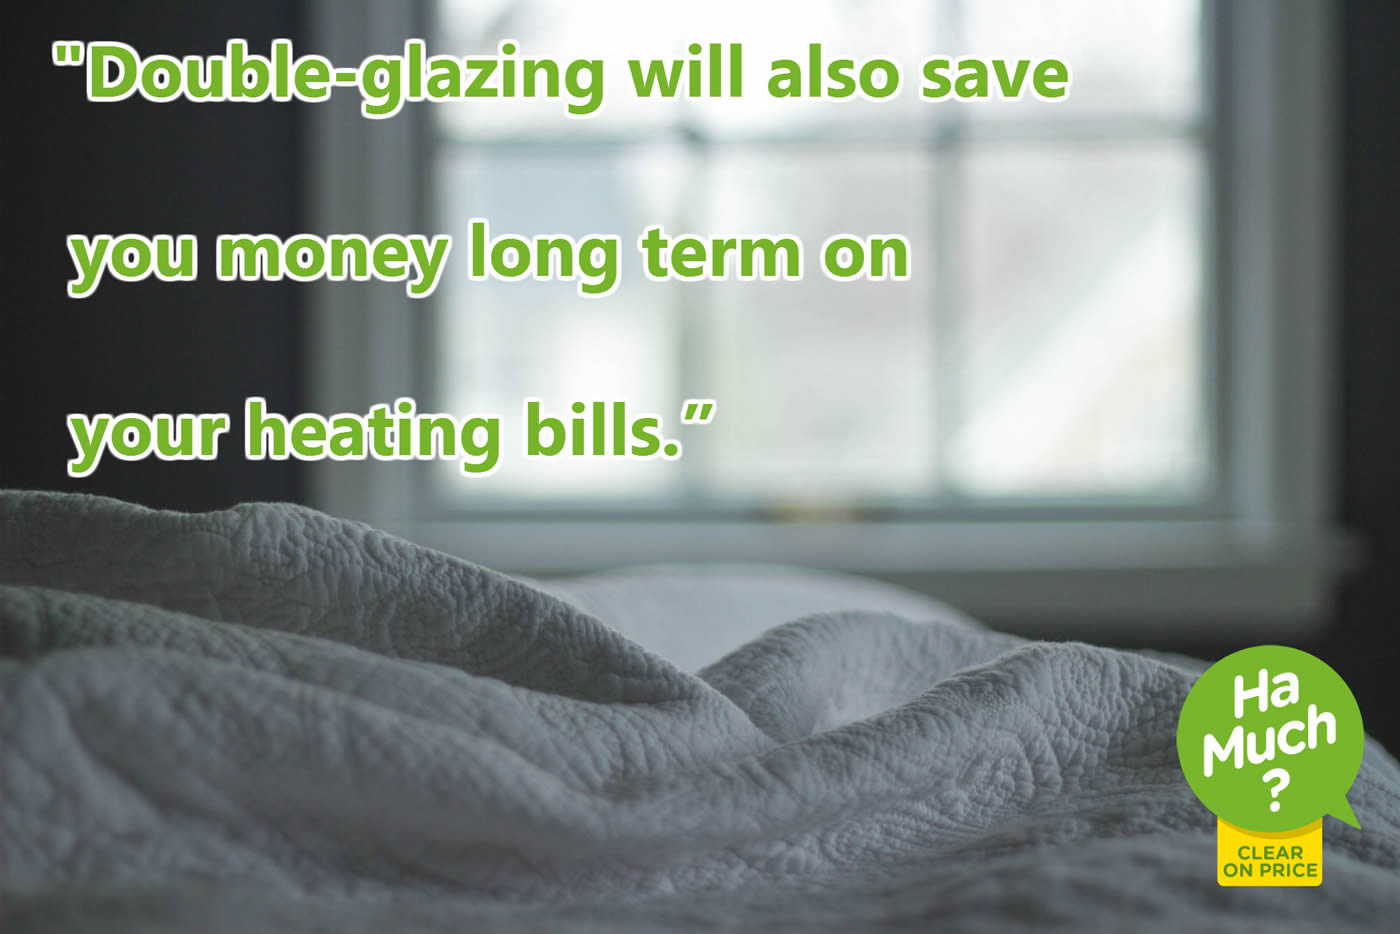 Double-glazing will also save your money long term on your heating bills